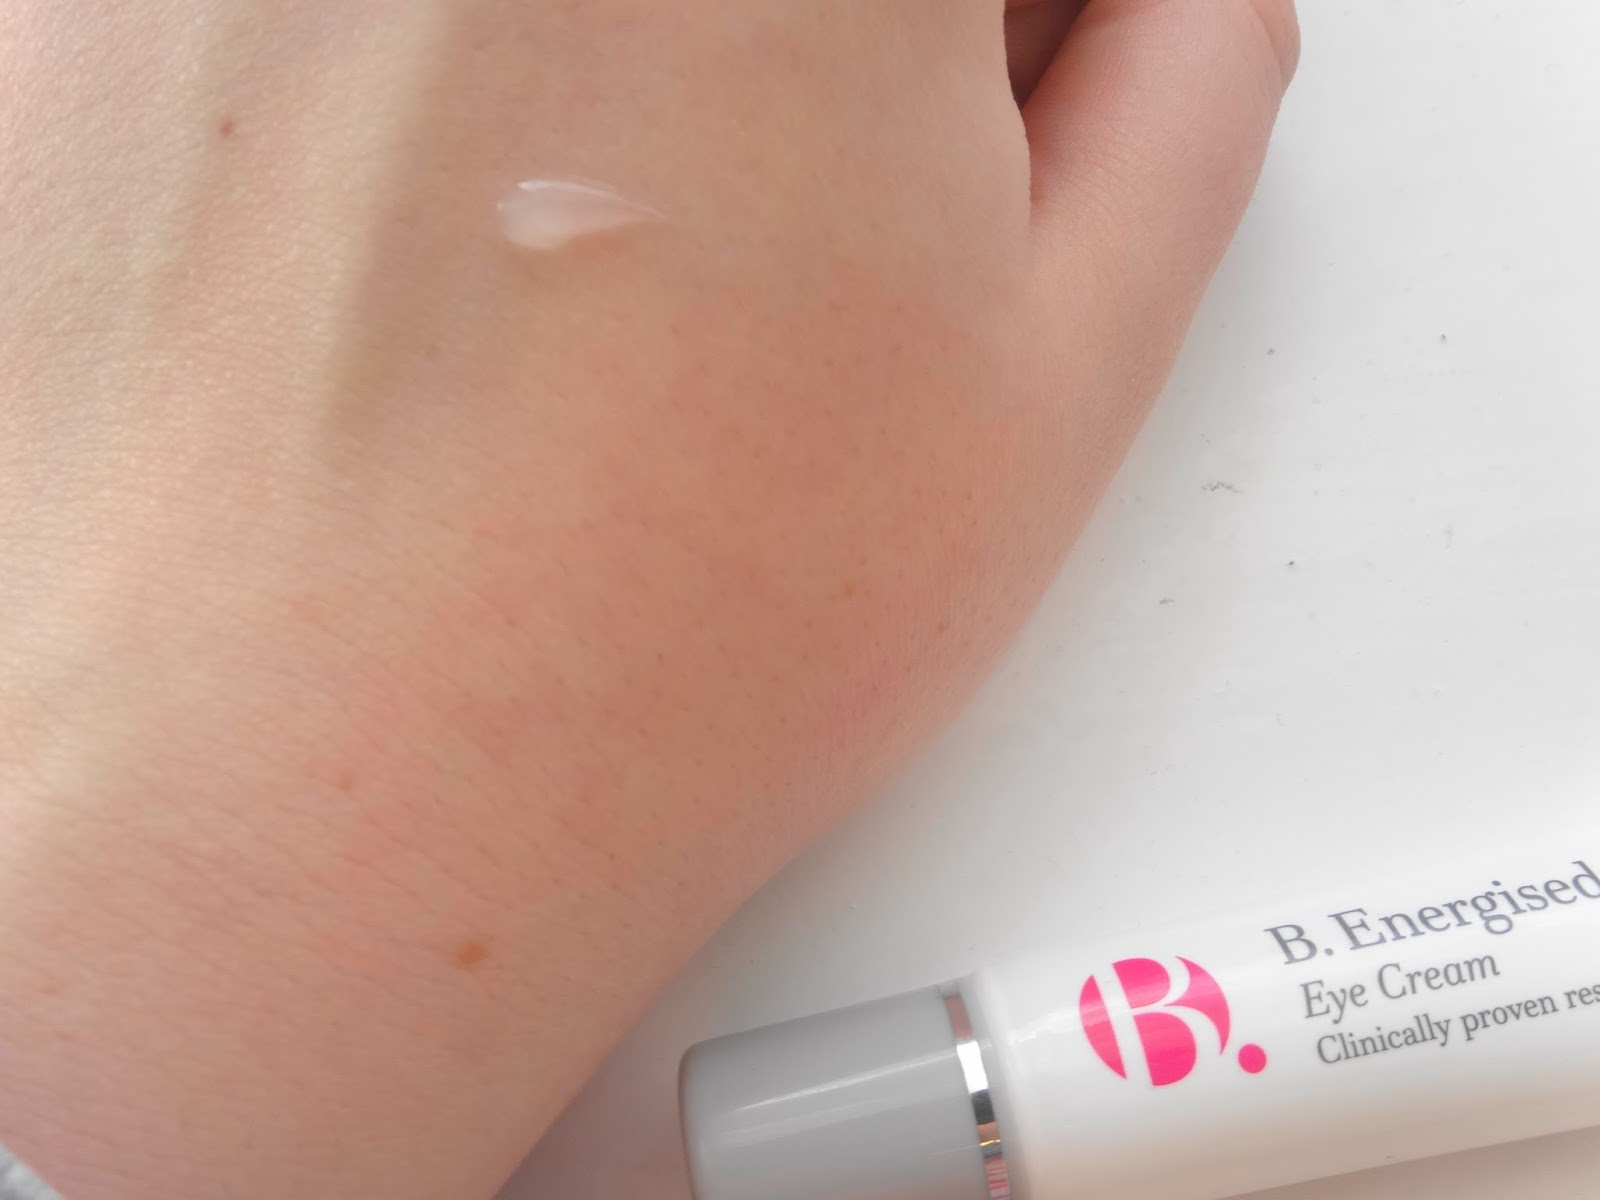 B.Energised Eye Cream